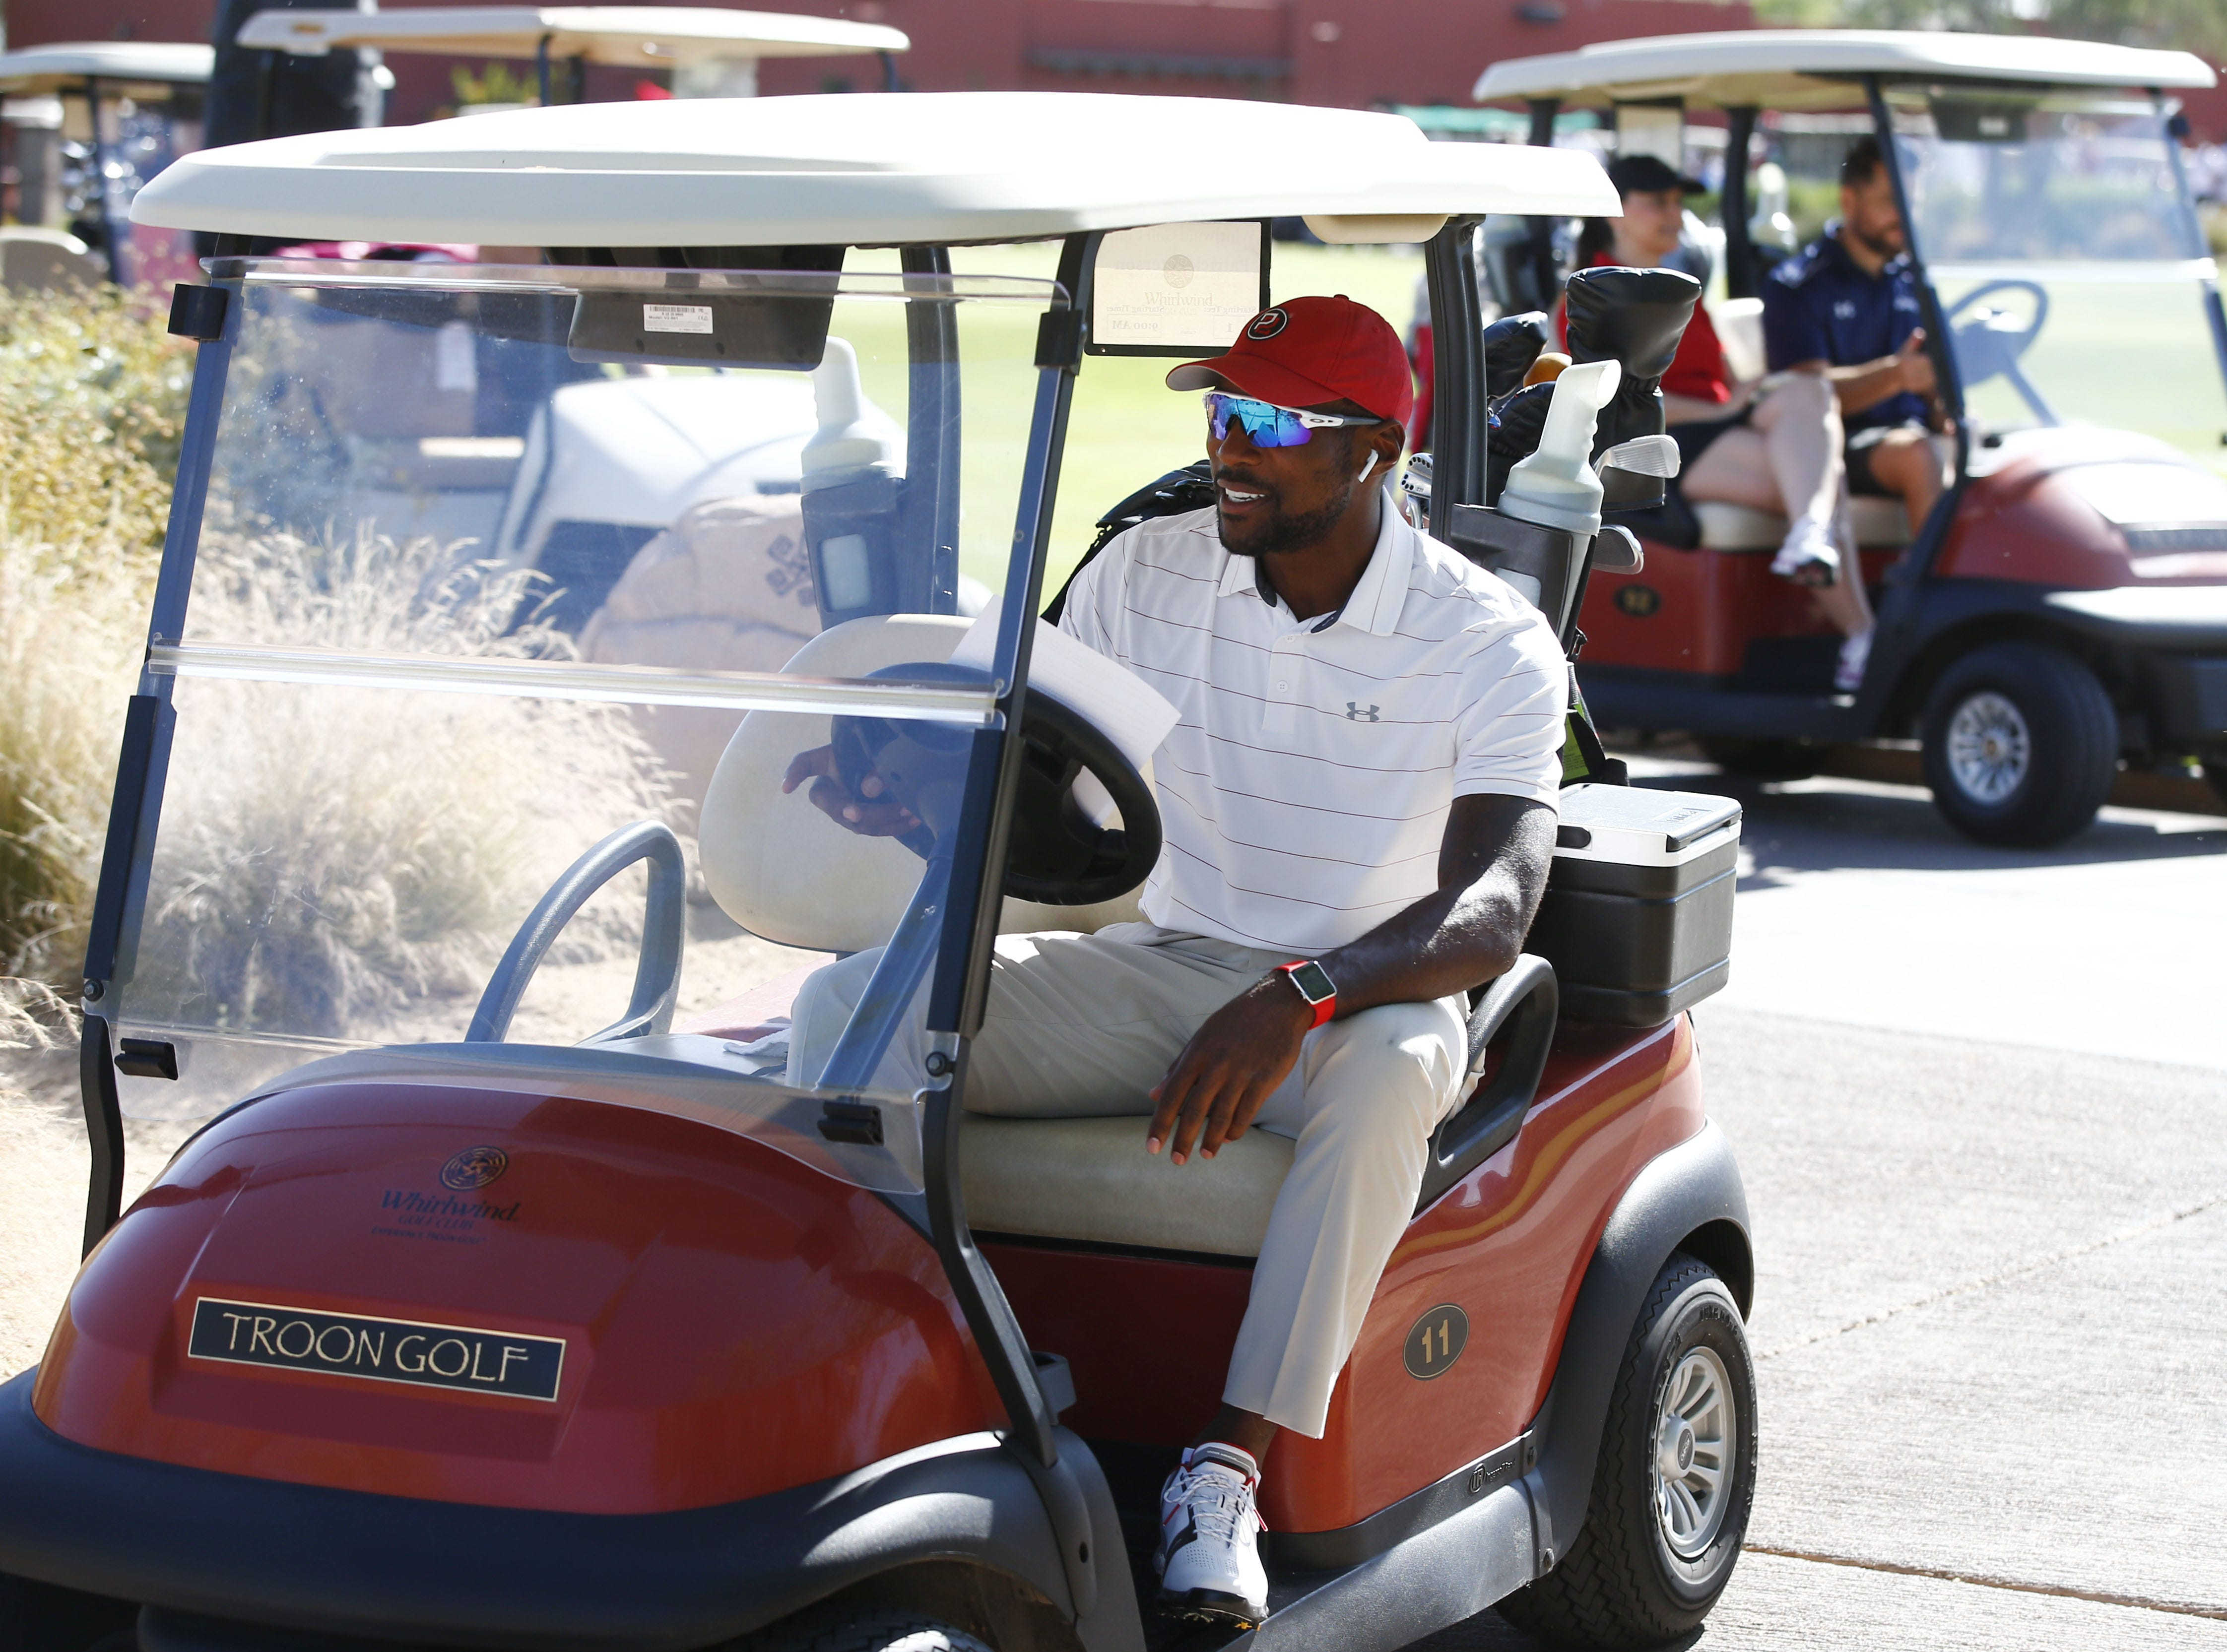 Arizona Cardinals cornerback Patrick Peterson drives to the 1st tee box during the 28th annual Celebrity Golf Classic presented by Cardinals Charities on Wednesday, April 19, 2017 at Whirlwind Golf Club at Wild Horse Pass in Chandler, Ariz.